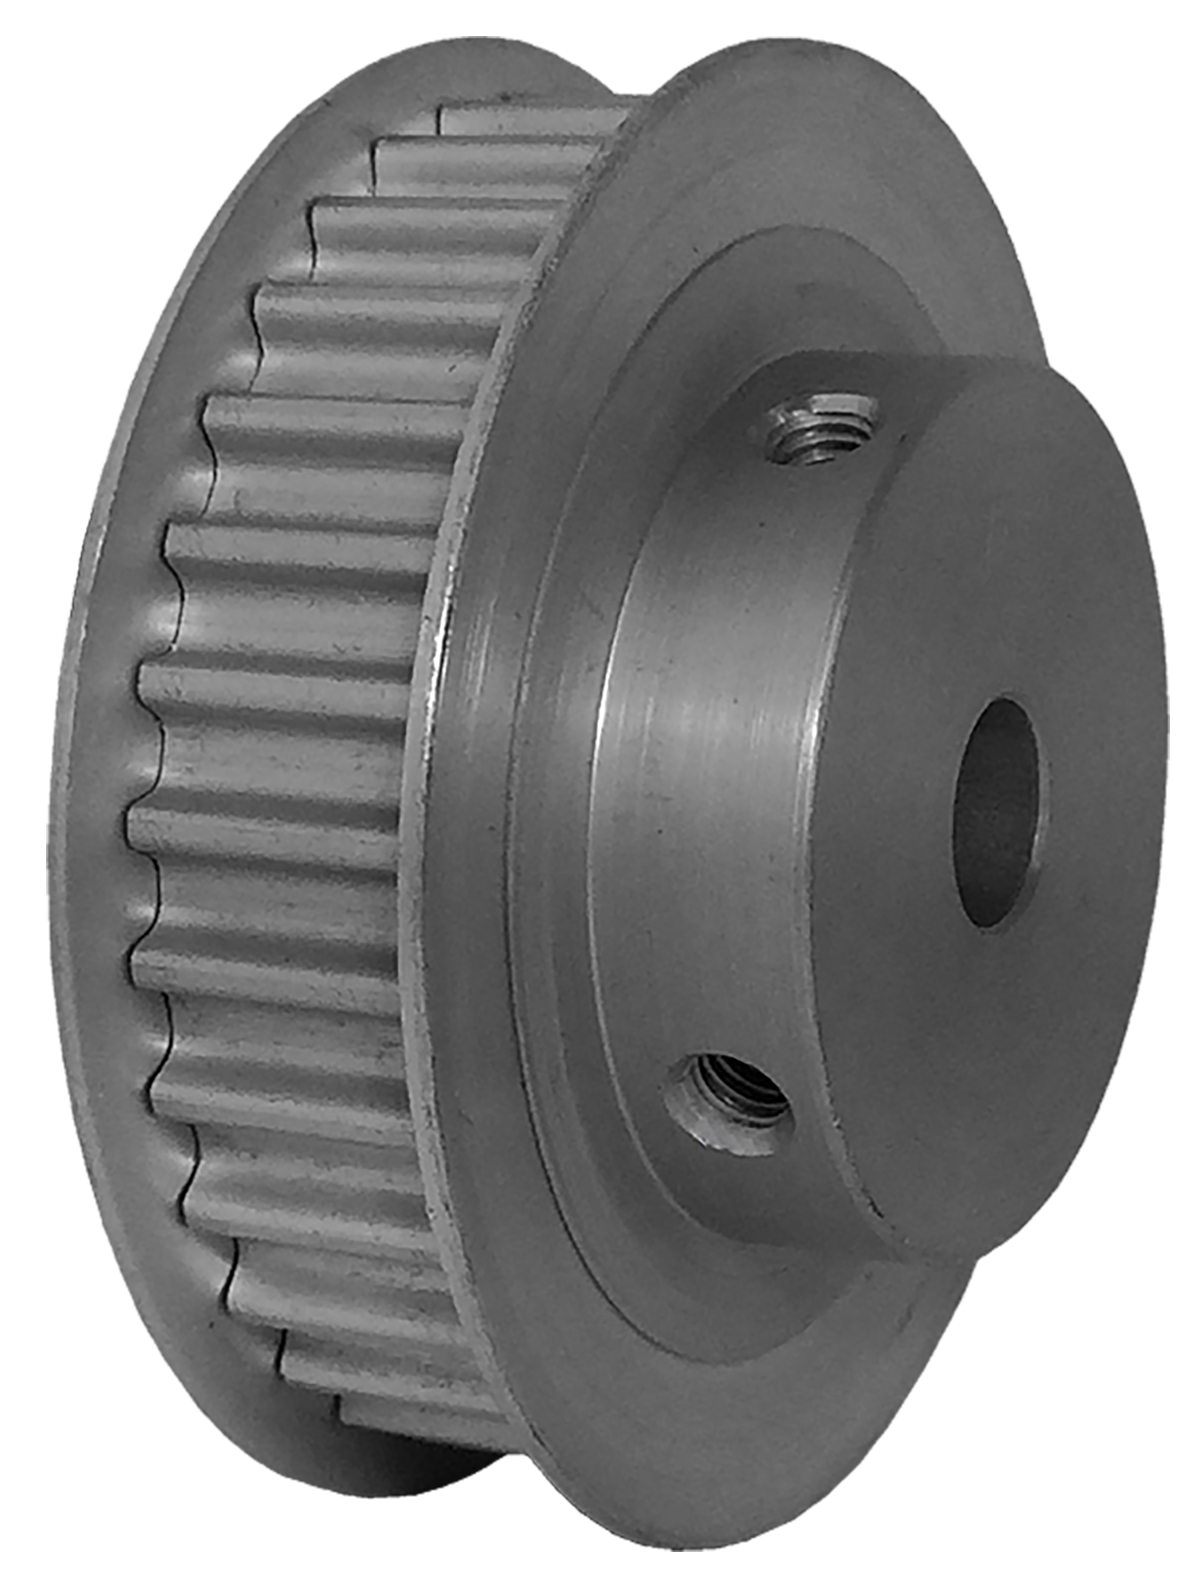 32-5M09M6FA8 - Aluminum Powerhouse®HTD® Pulleys